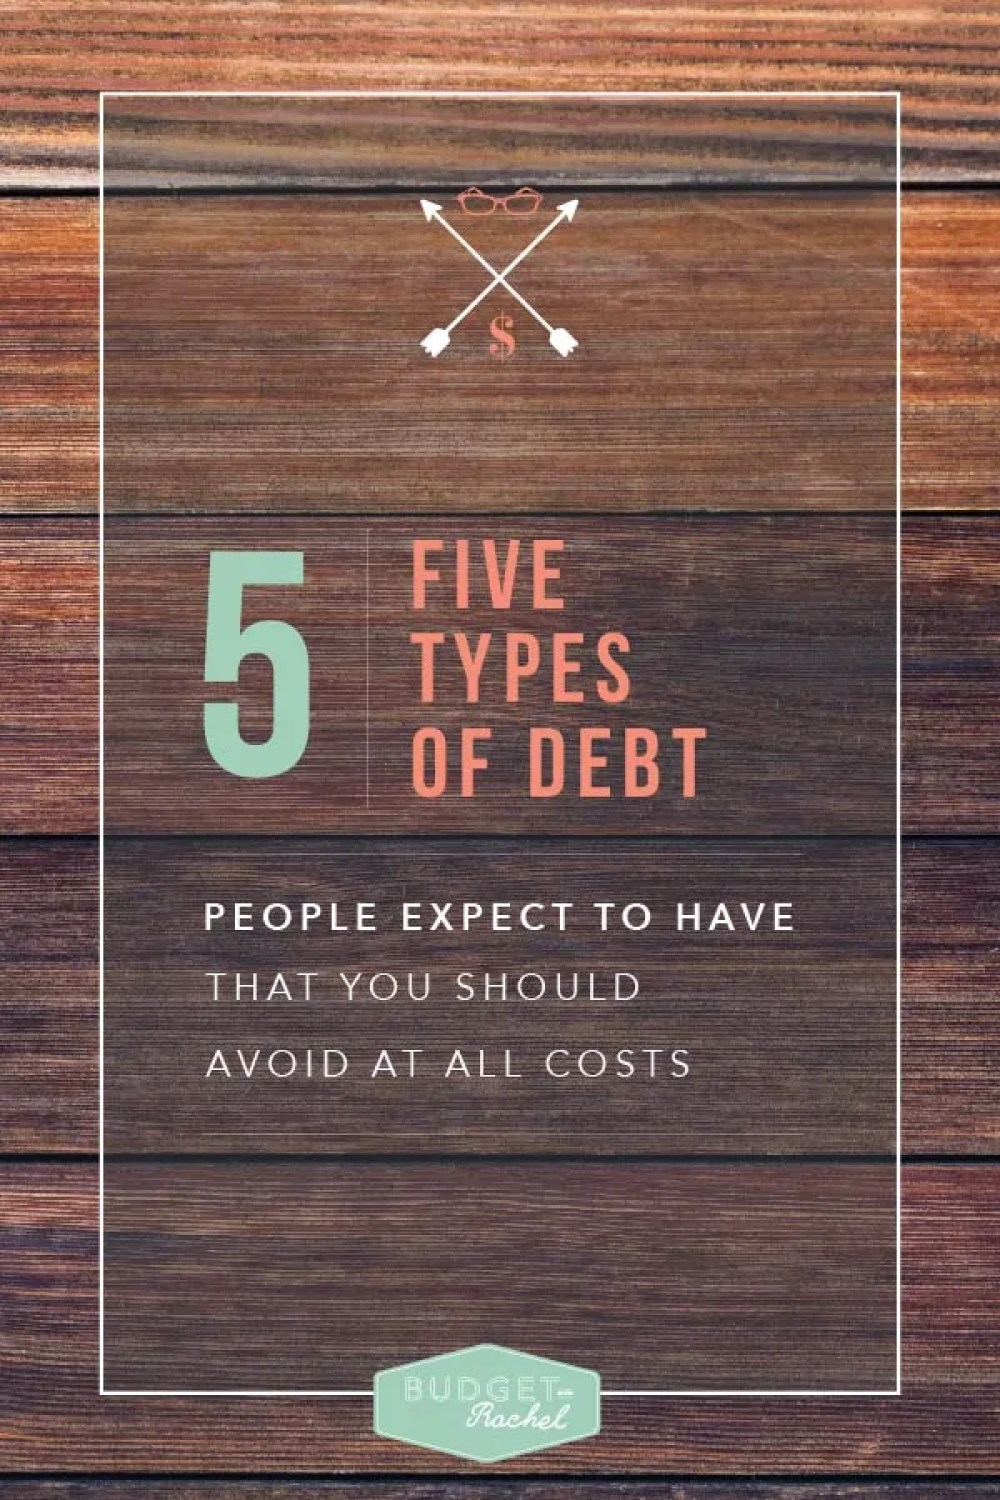 5 types of debt people expect to have that you should avoid at all costs. I wish I had read this advice sooner. I have 4 out of 5 of these types of debt people expect, and wish I would have avoided them. I had no idea these debts didn't have to be part of my future. My life would be completely different without these debts, especially #4!! Now I know better and will always avoid these debts at all costs!